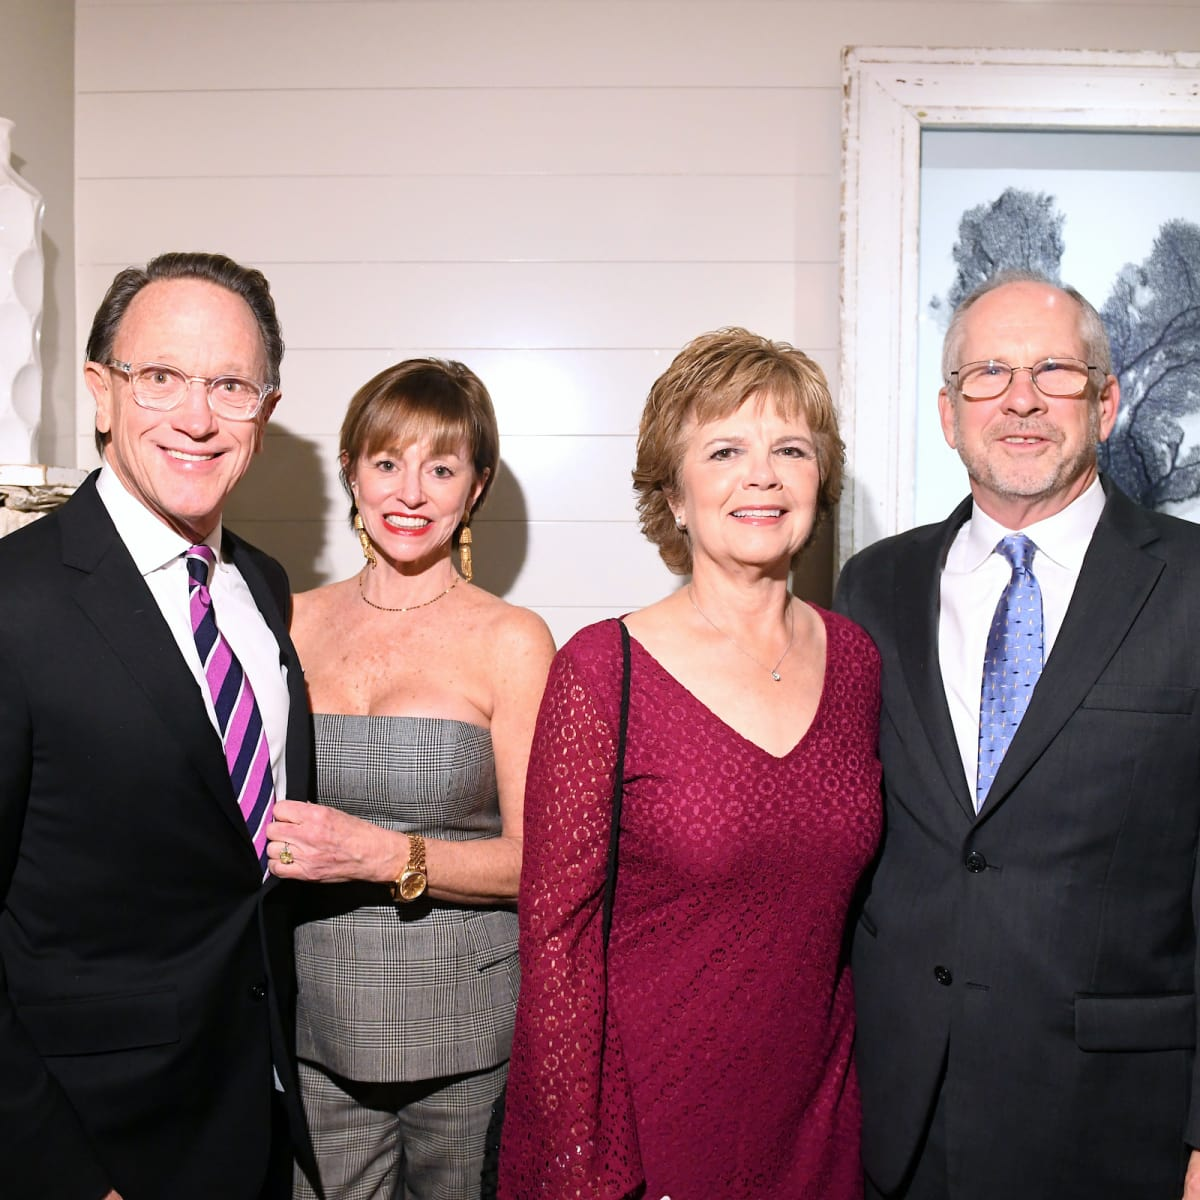 Houston, ZaZa Memorial City grand opening, February 2018, Charlie Givens, Laurie Givens, Becky Dykes, Tim Dykes